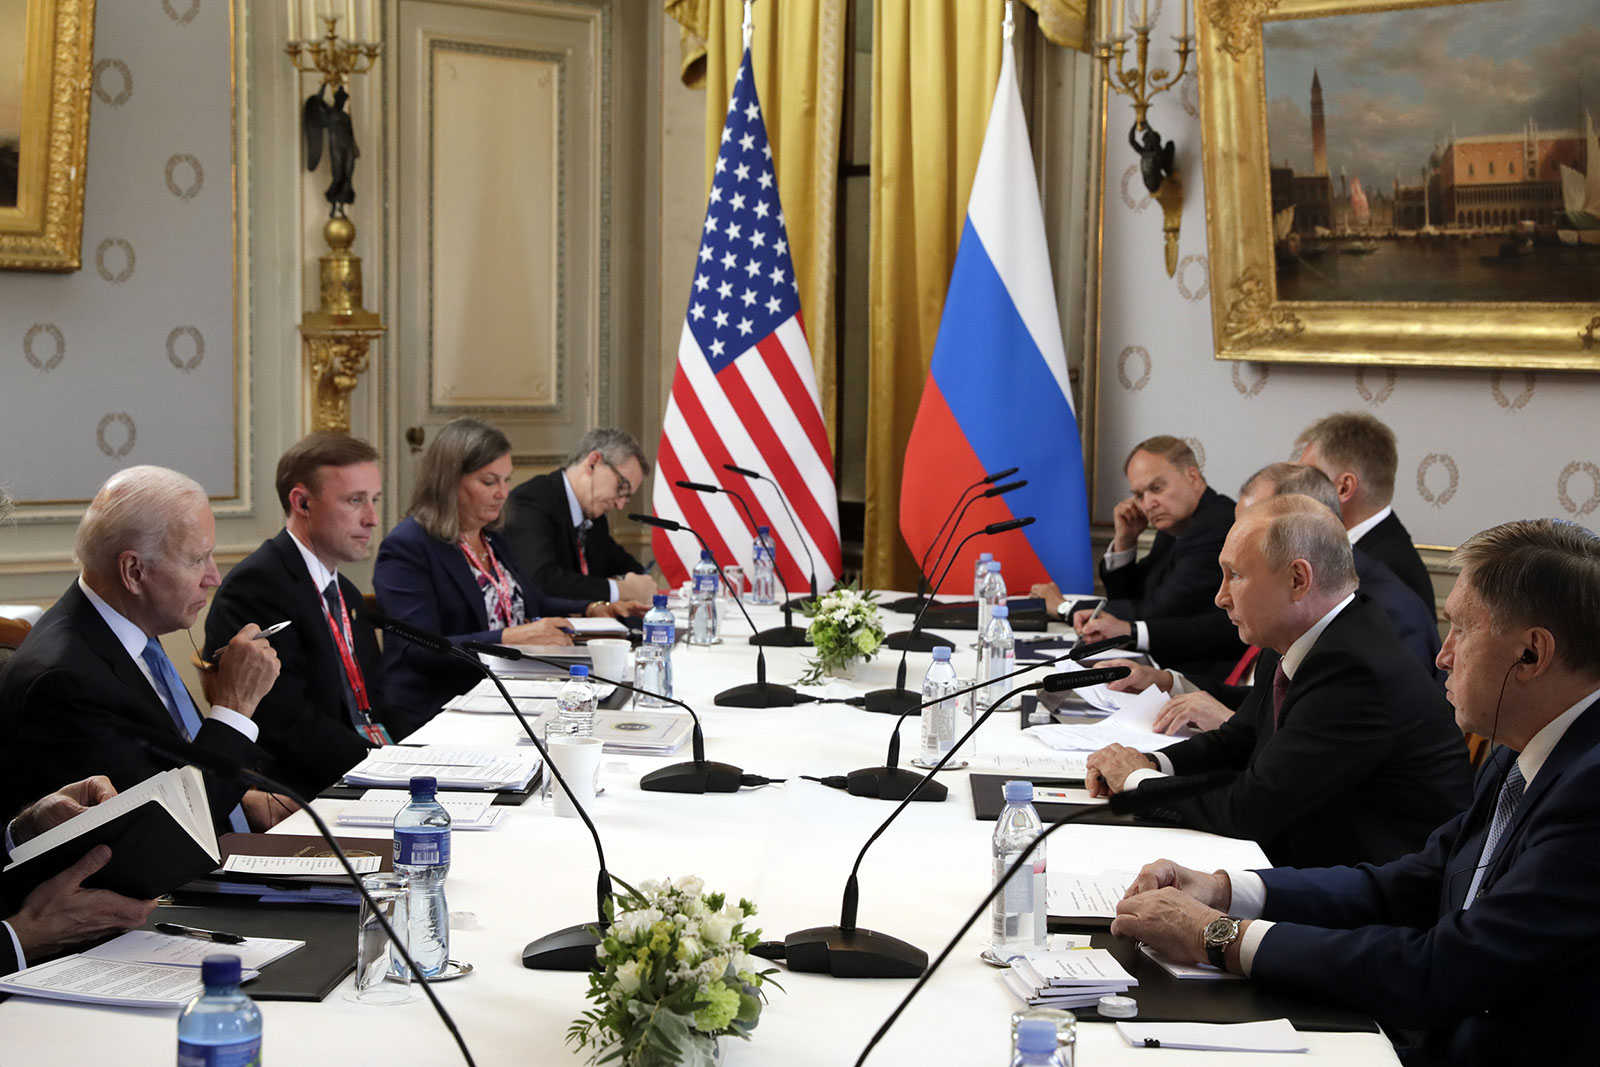 Meeting of the American and Russian delegation in Geneva